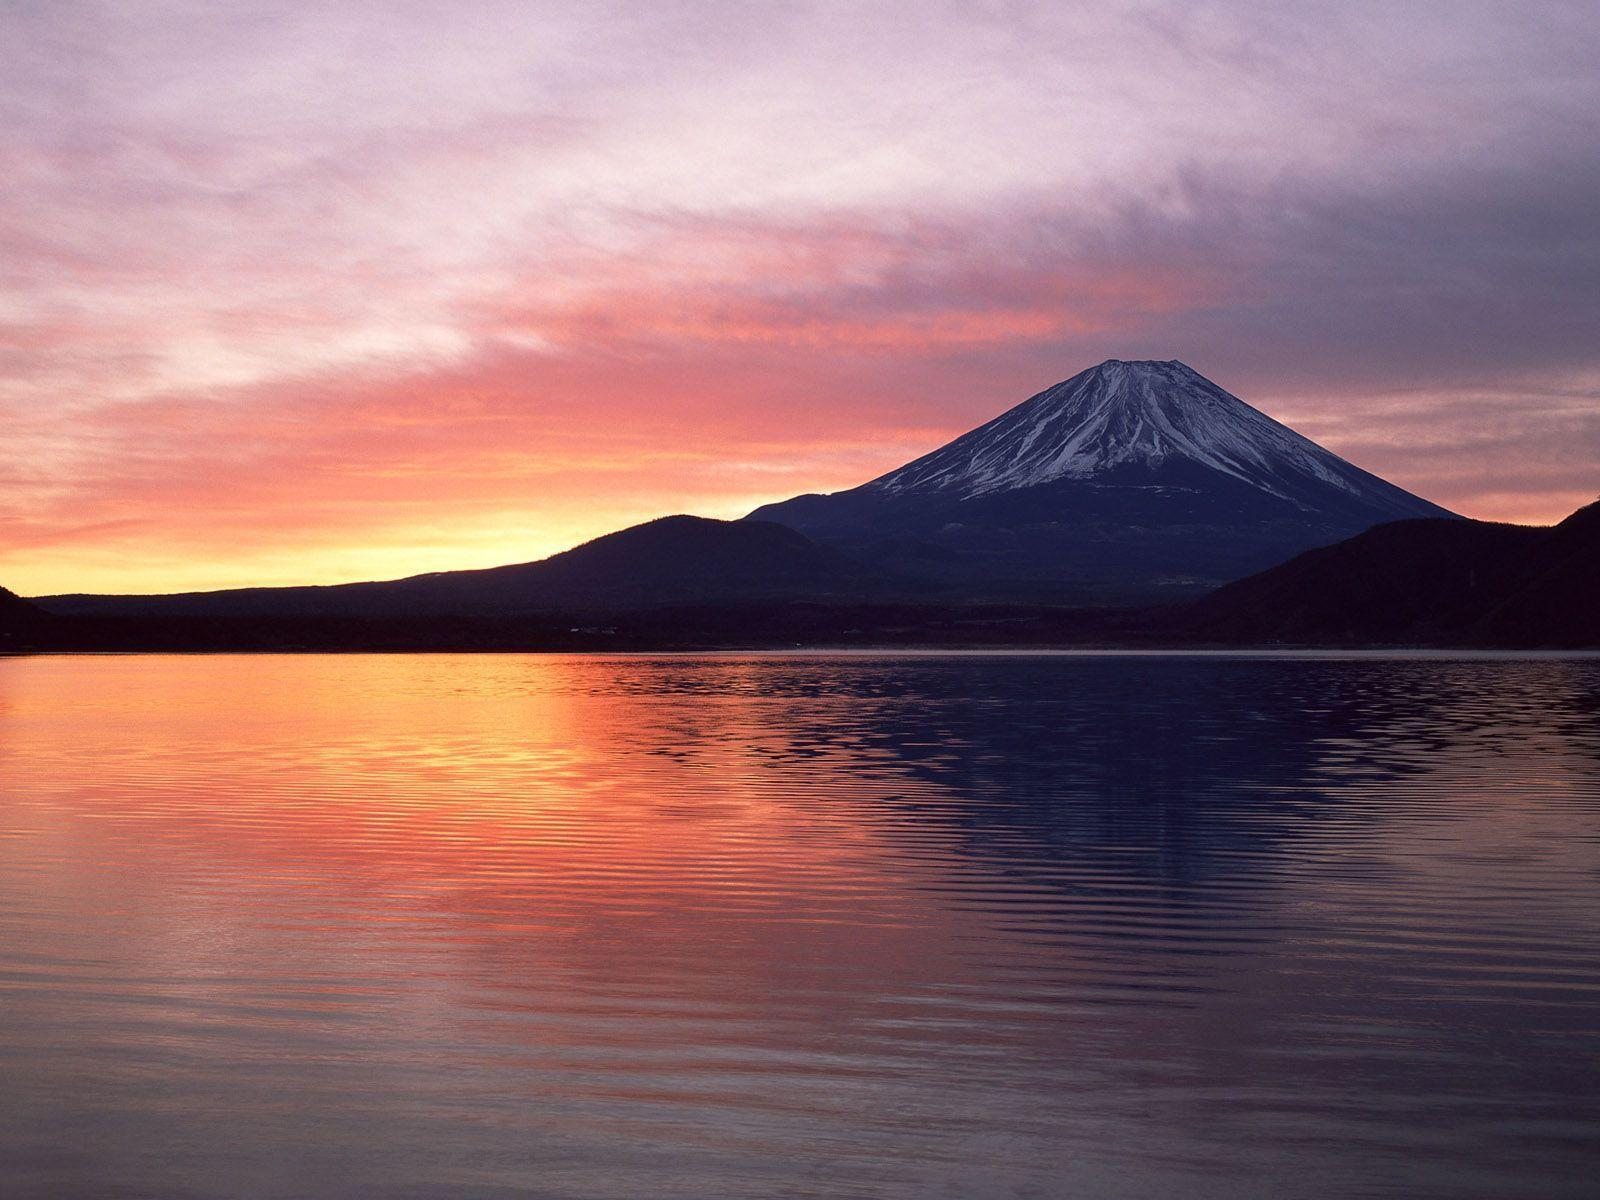 Mount Fuji Wallpaper Windows 10 Wallpaper Fuji 1865541